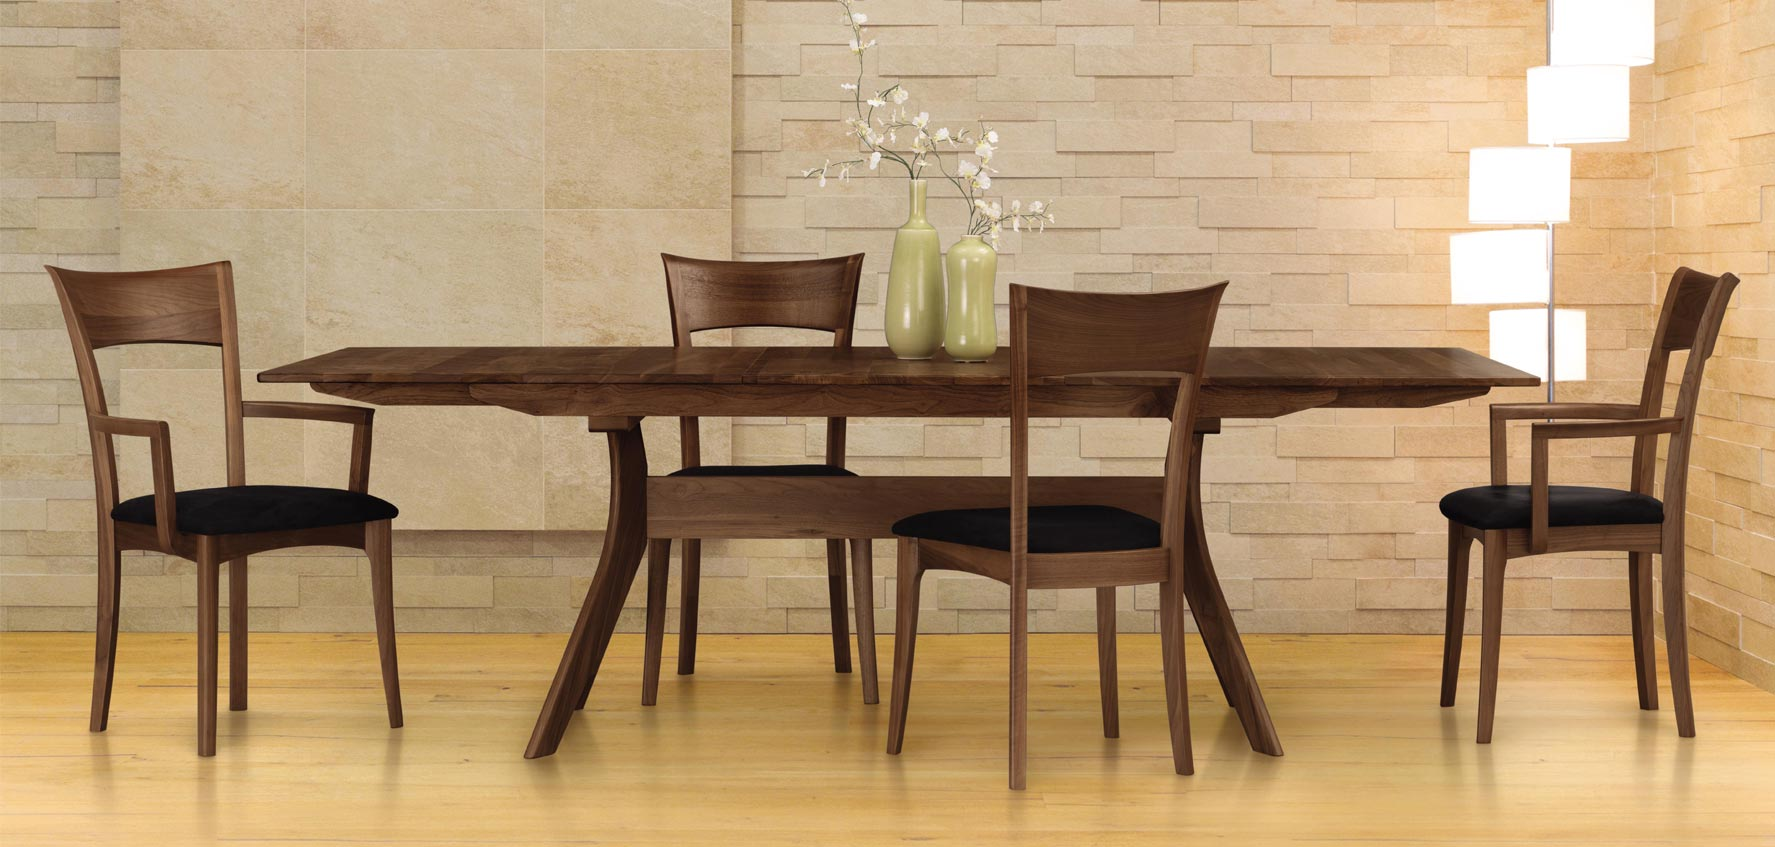 Copeland Furniture Dining Tables Chairs